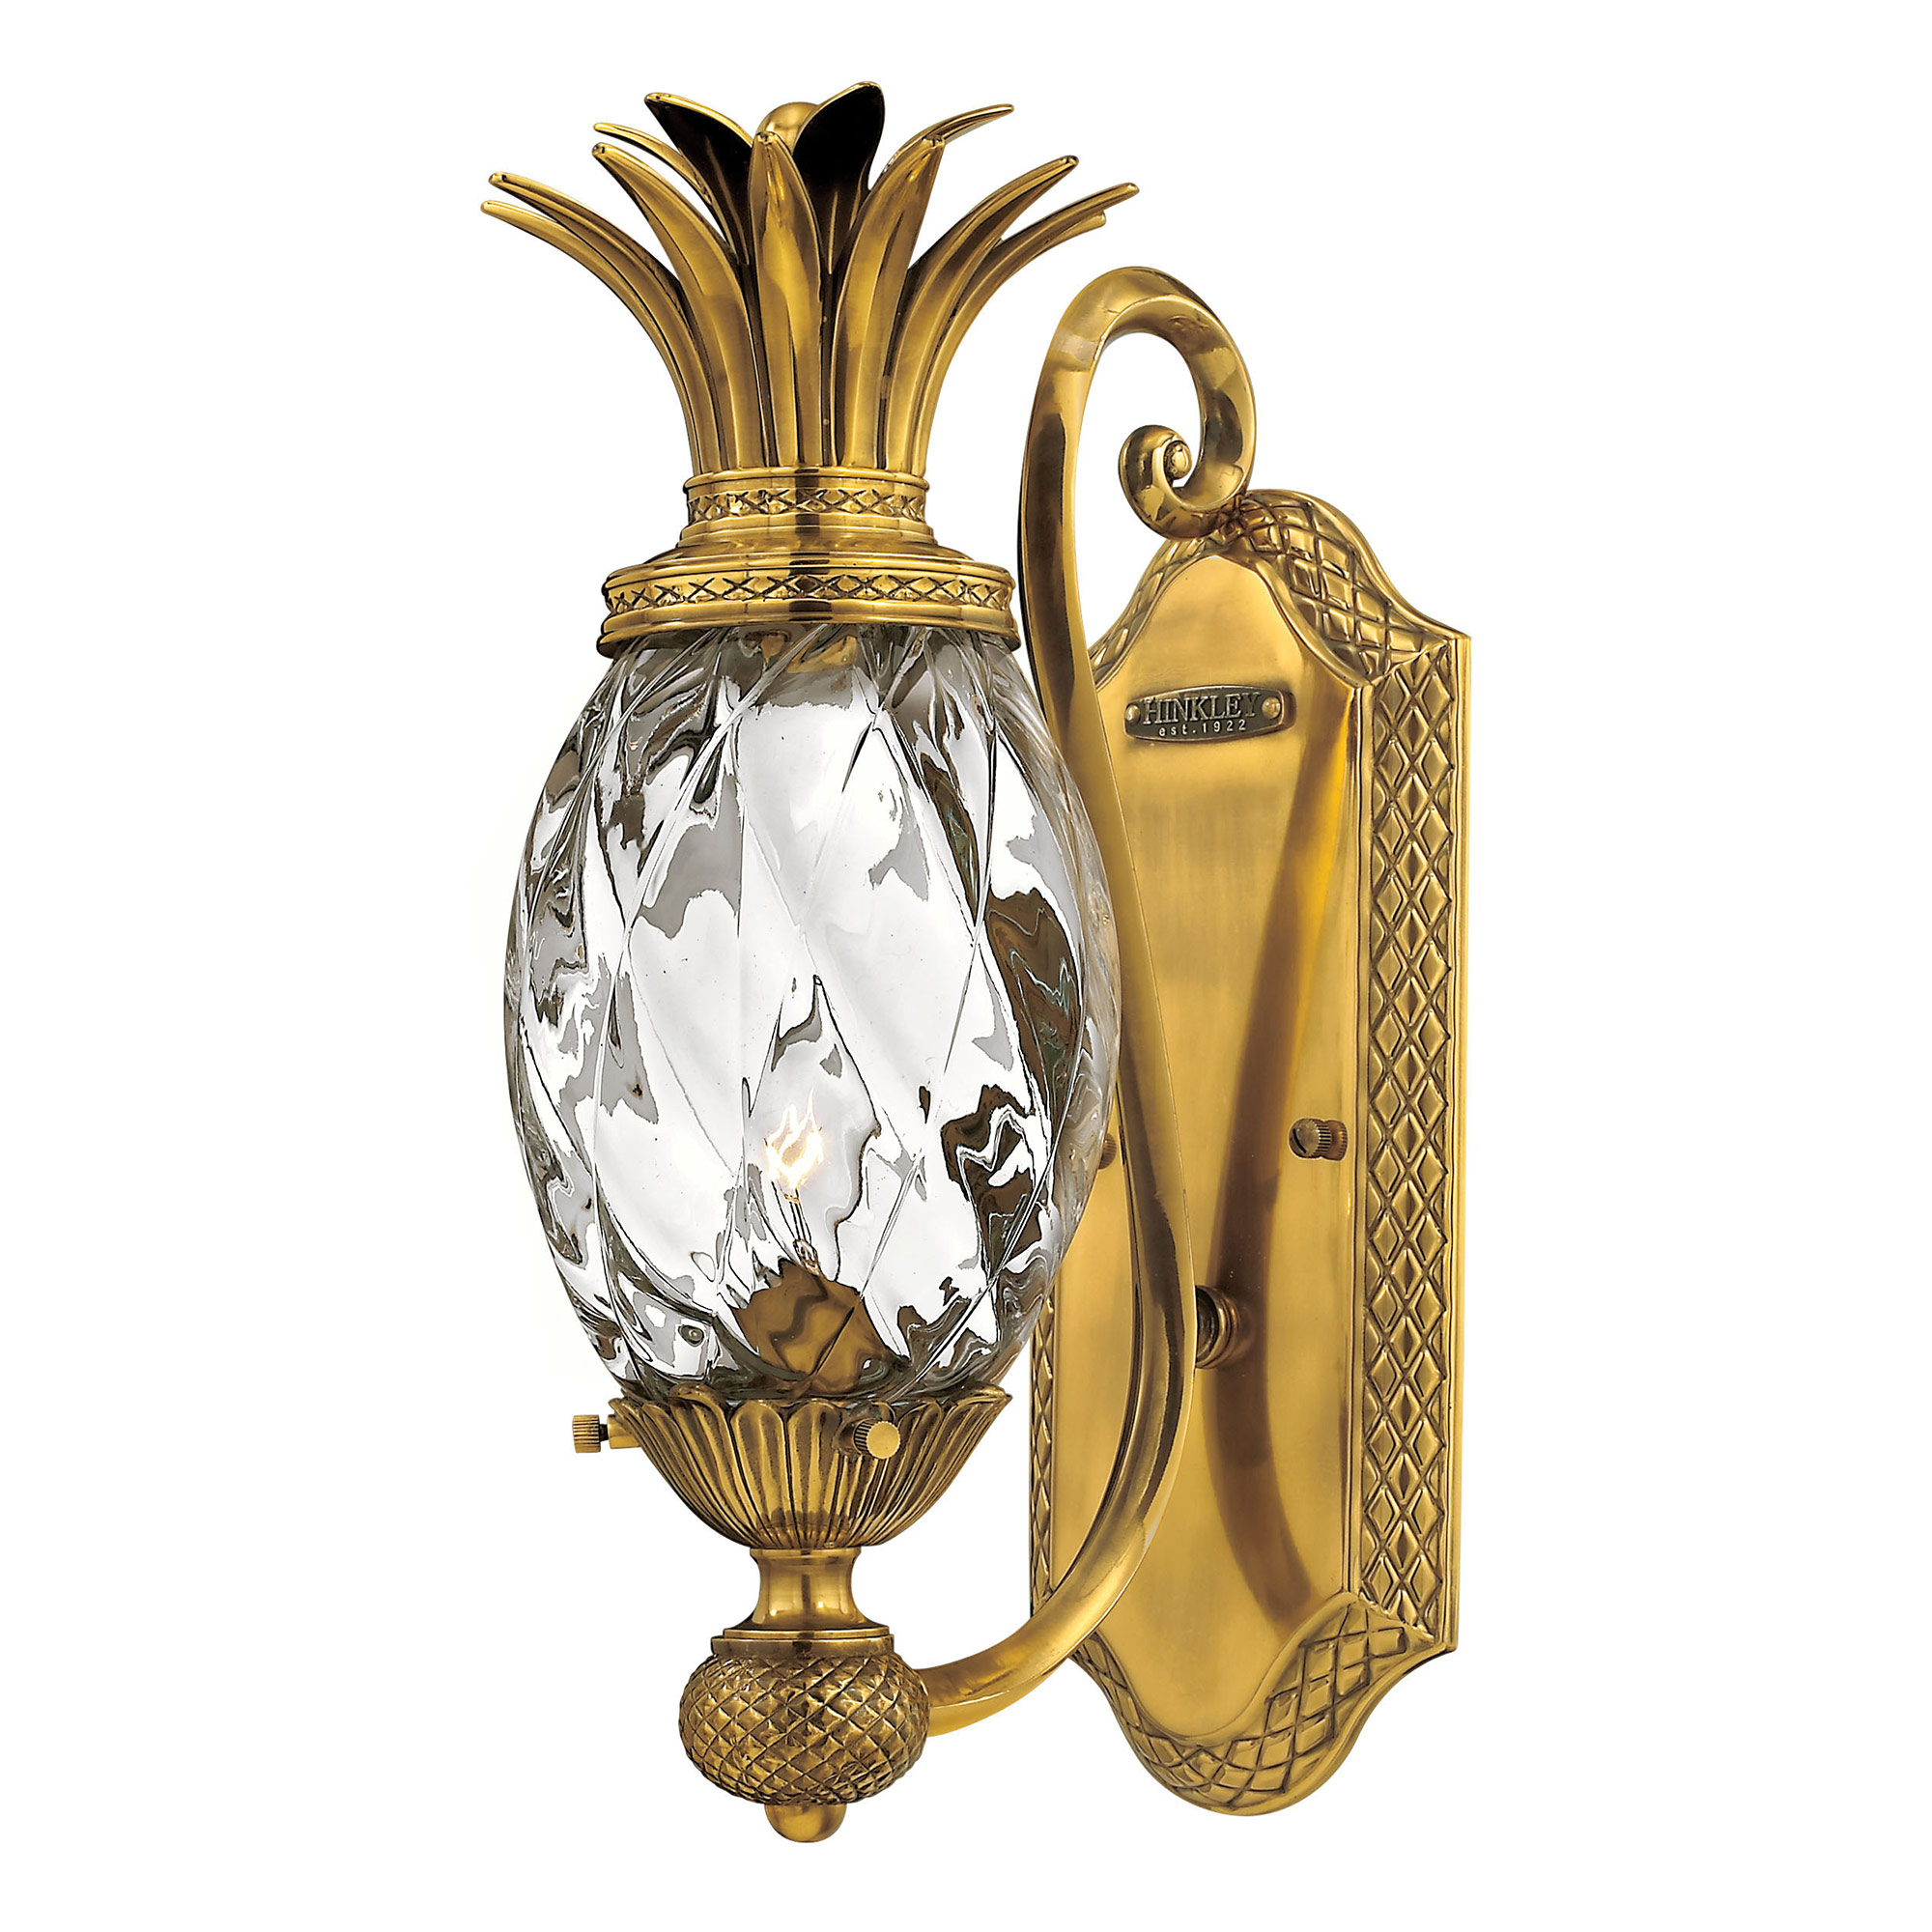 Plantation 4140 Wall Sconce by Hinkley Lighting   4140BB4140 Wall Sconce by Hinkley Lighting   4140BB. Hinkley Lighting Plantation 5 Light Chandelier. Home Design Ideas